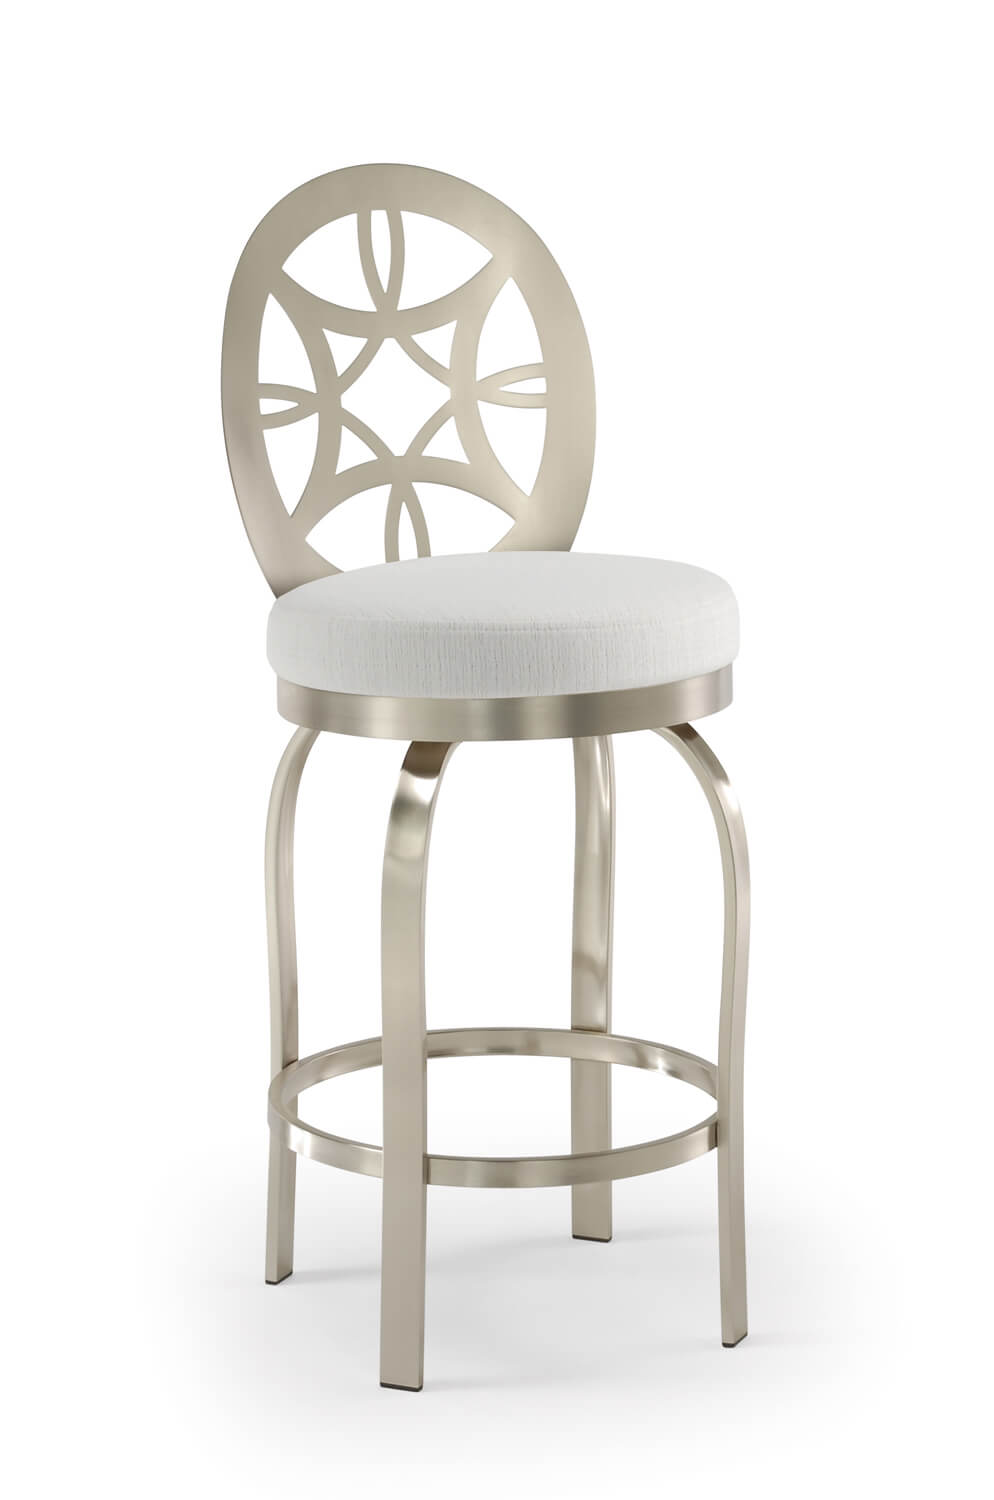 Buy Tricas Provence Brushed Stainless Steel Swivel Bar Stool